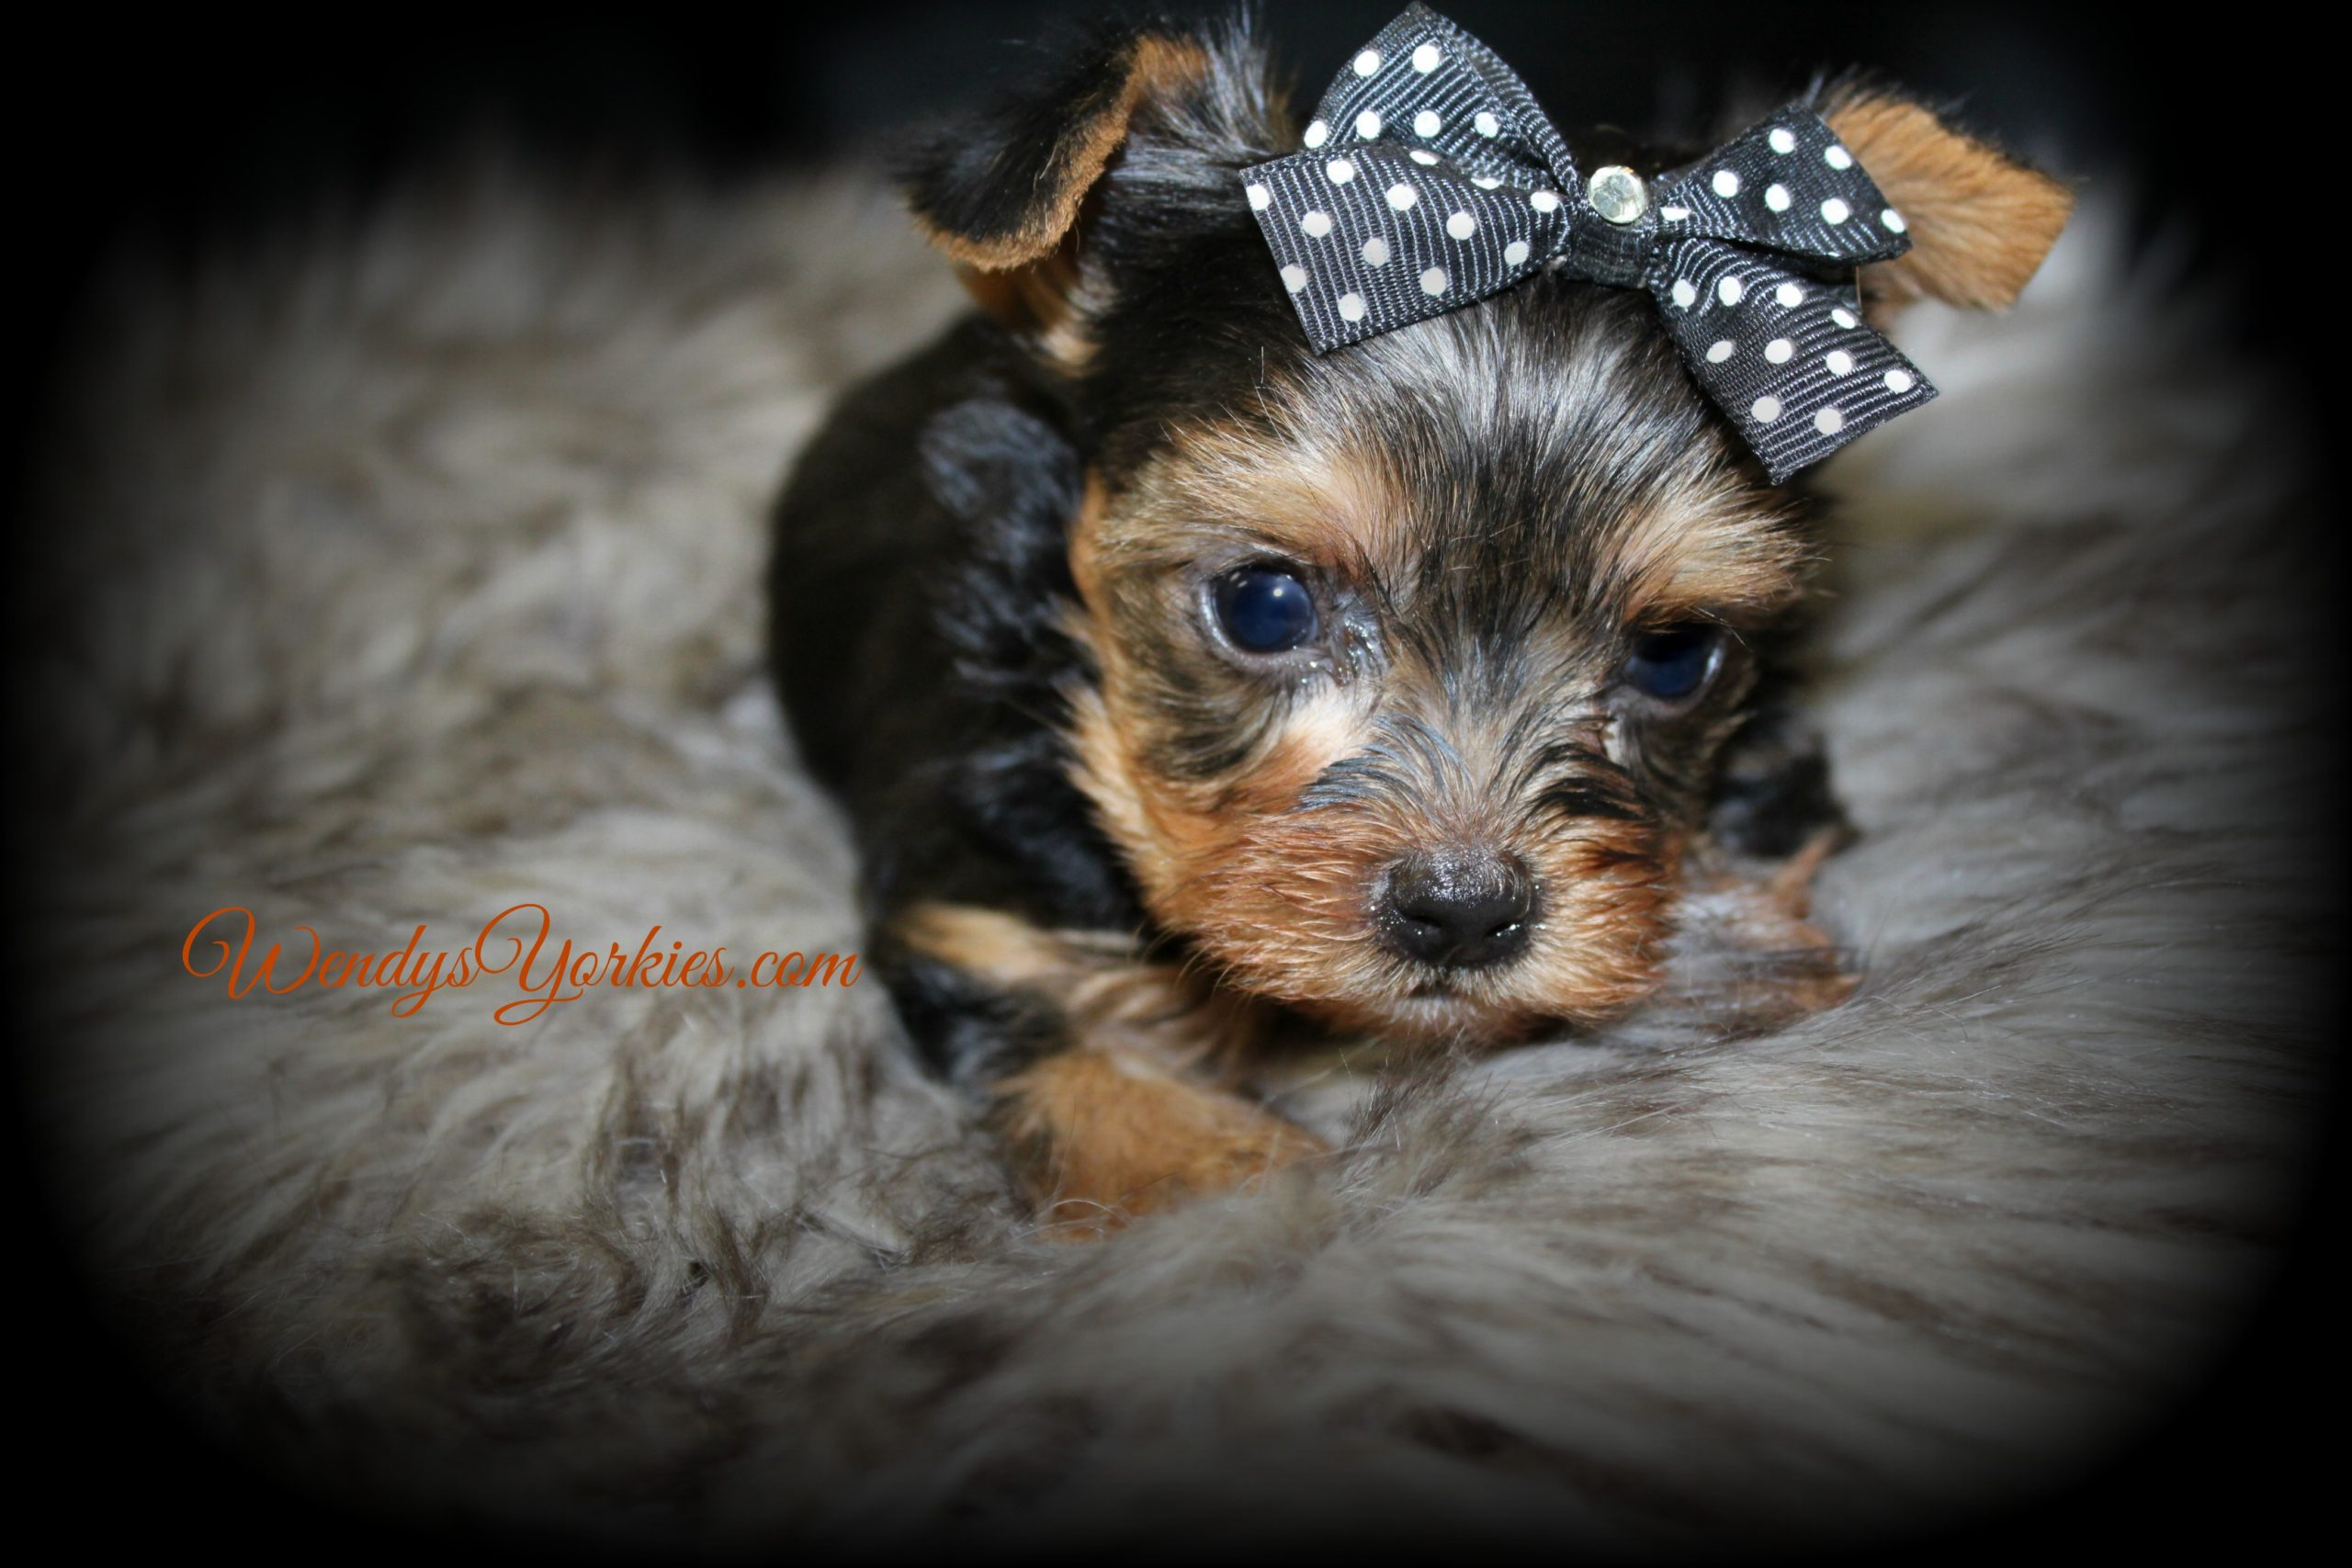 Teacup Yorkie puppy for sale, Grace m2, WendysYorkies.com